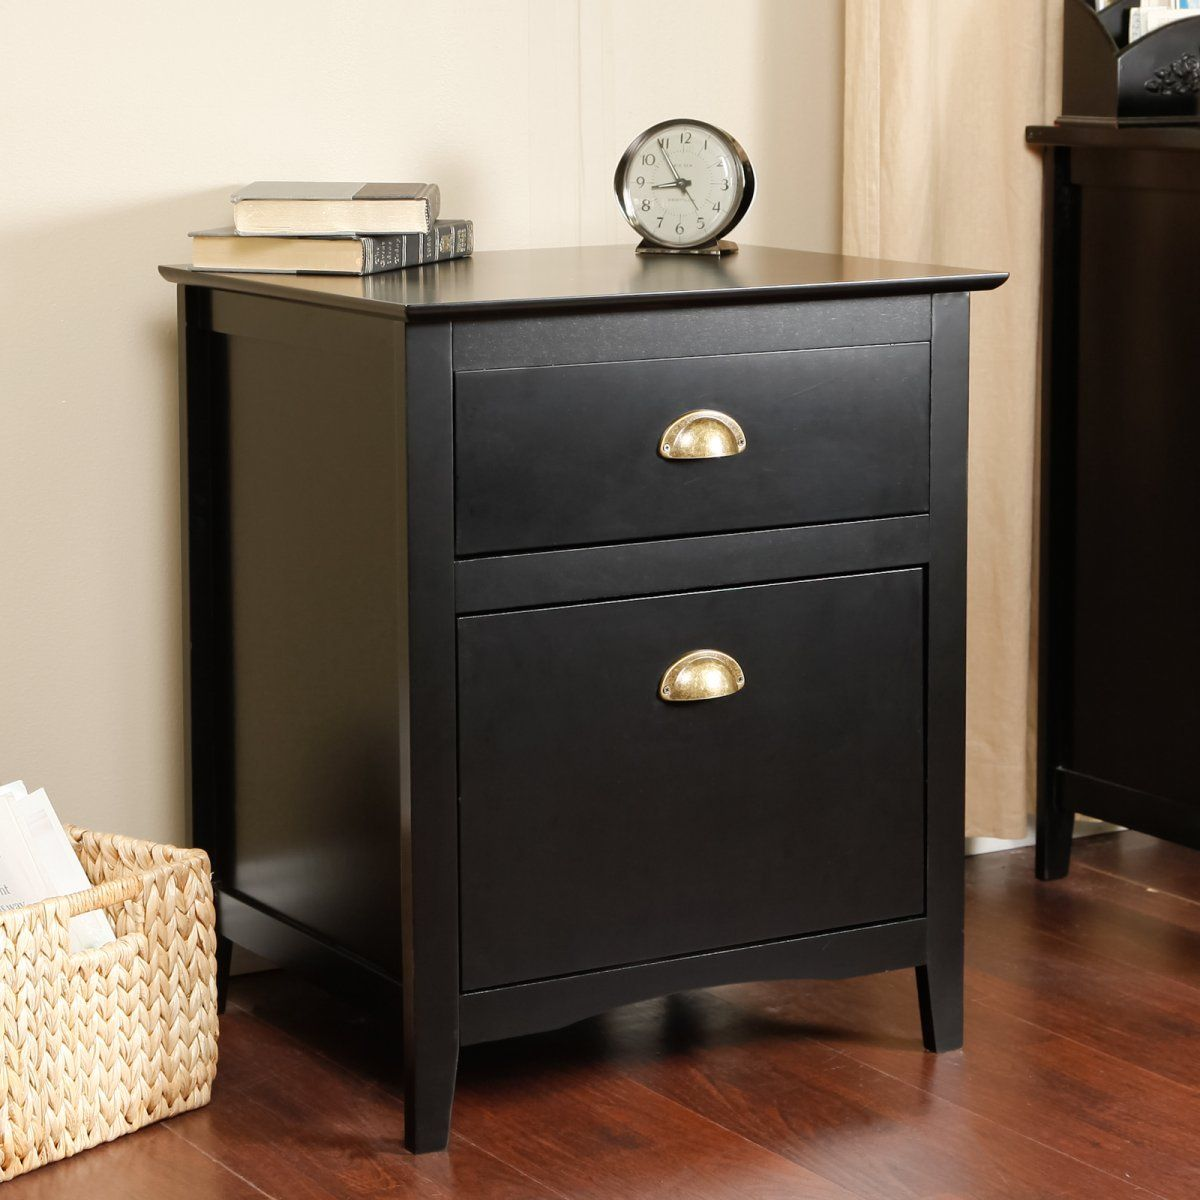 Filing cabinet that doesn't look like a filing cabinet. Yes please.